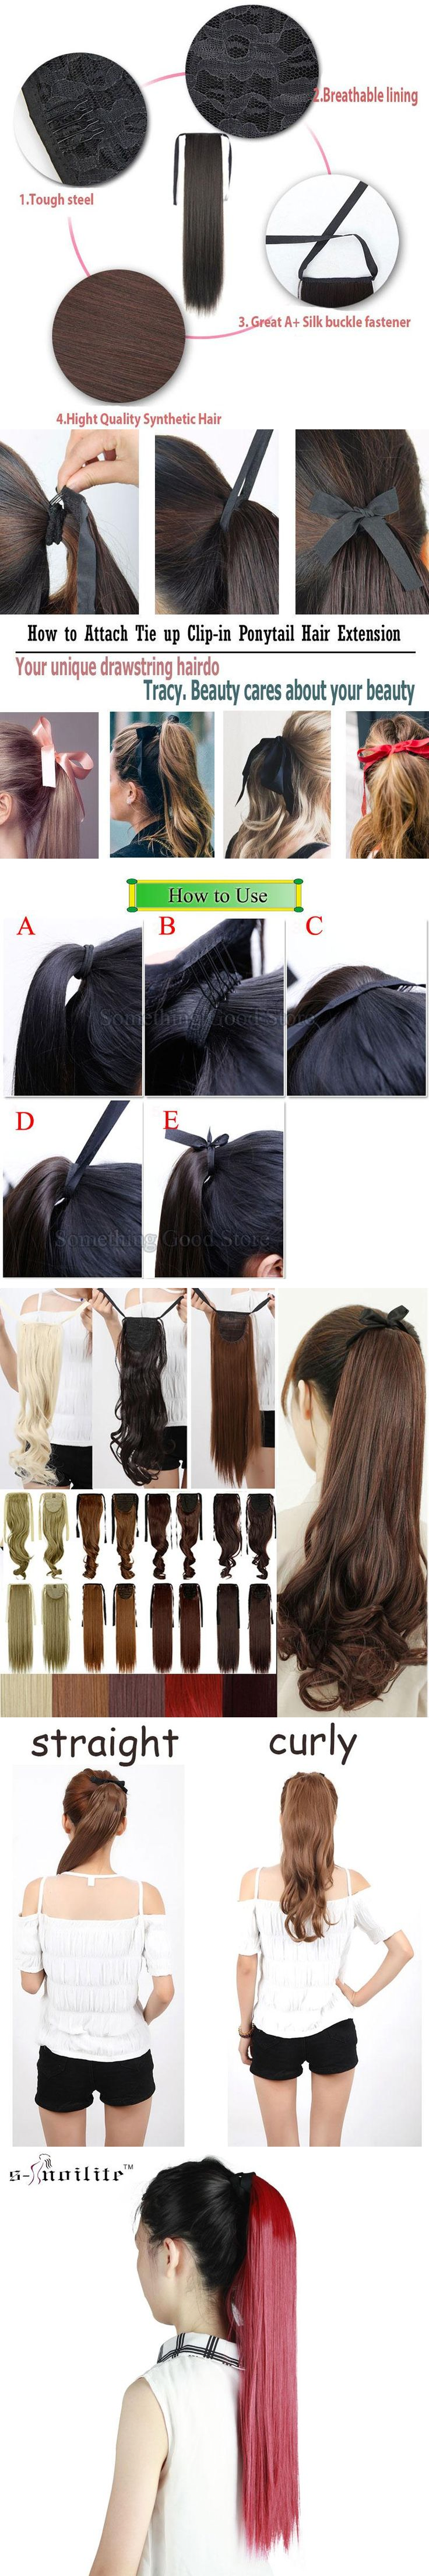 """SNOILITE Long Synthetic Straight Ponytails 22"""" 120g Clip In Ponytail Hair Extension Hair piece 14 Colors"""